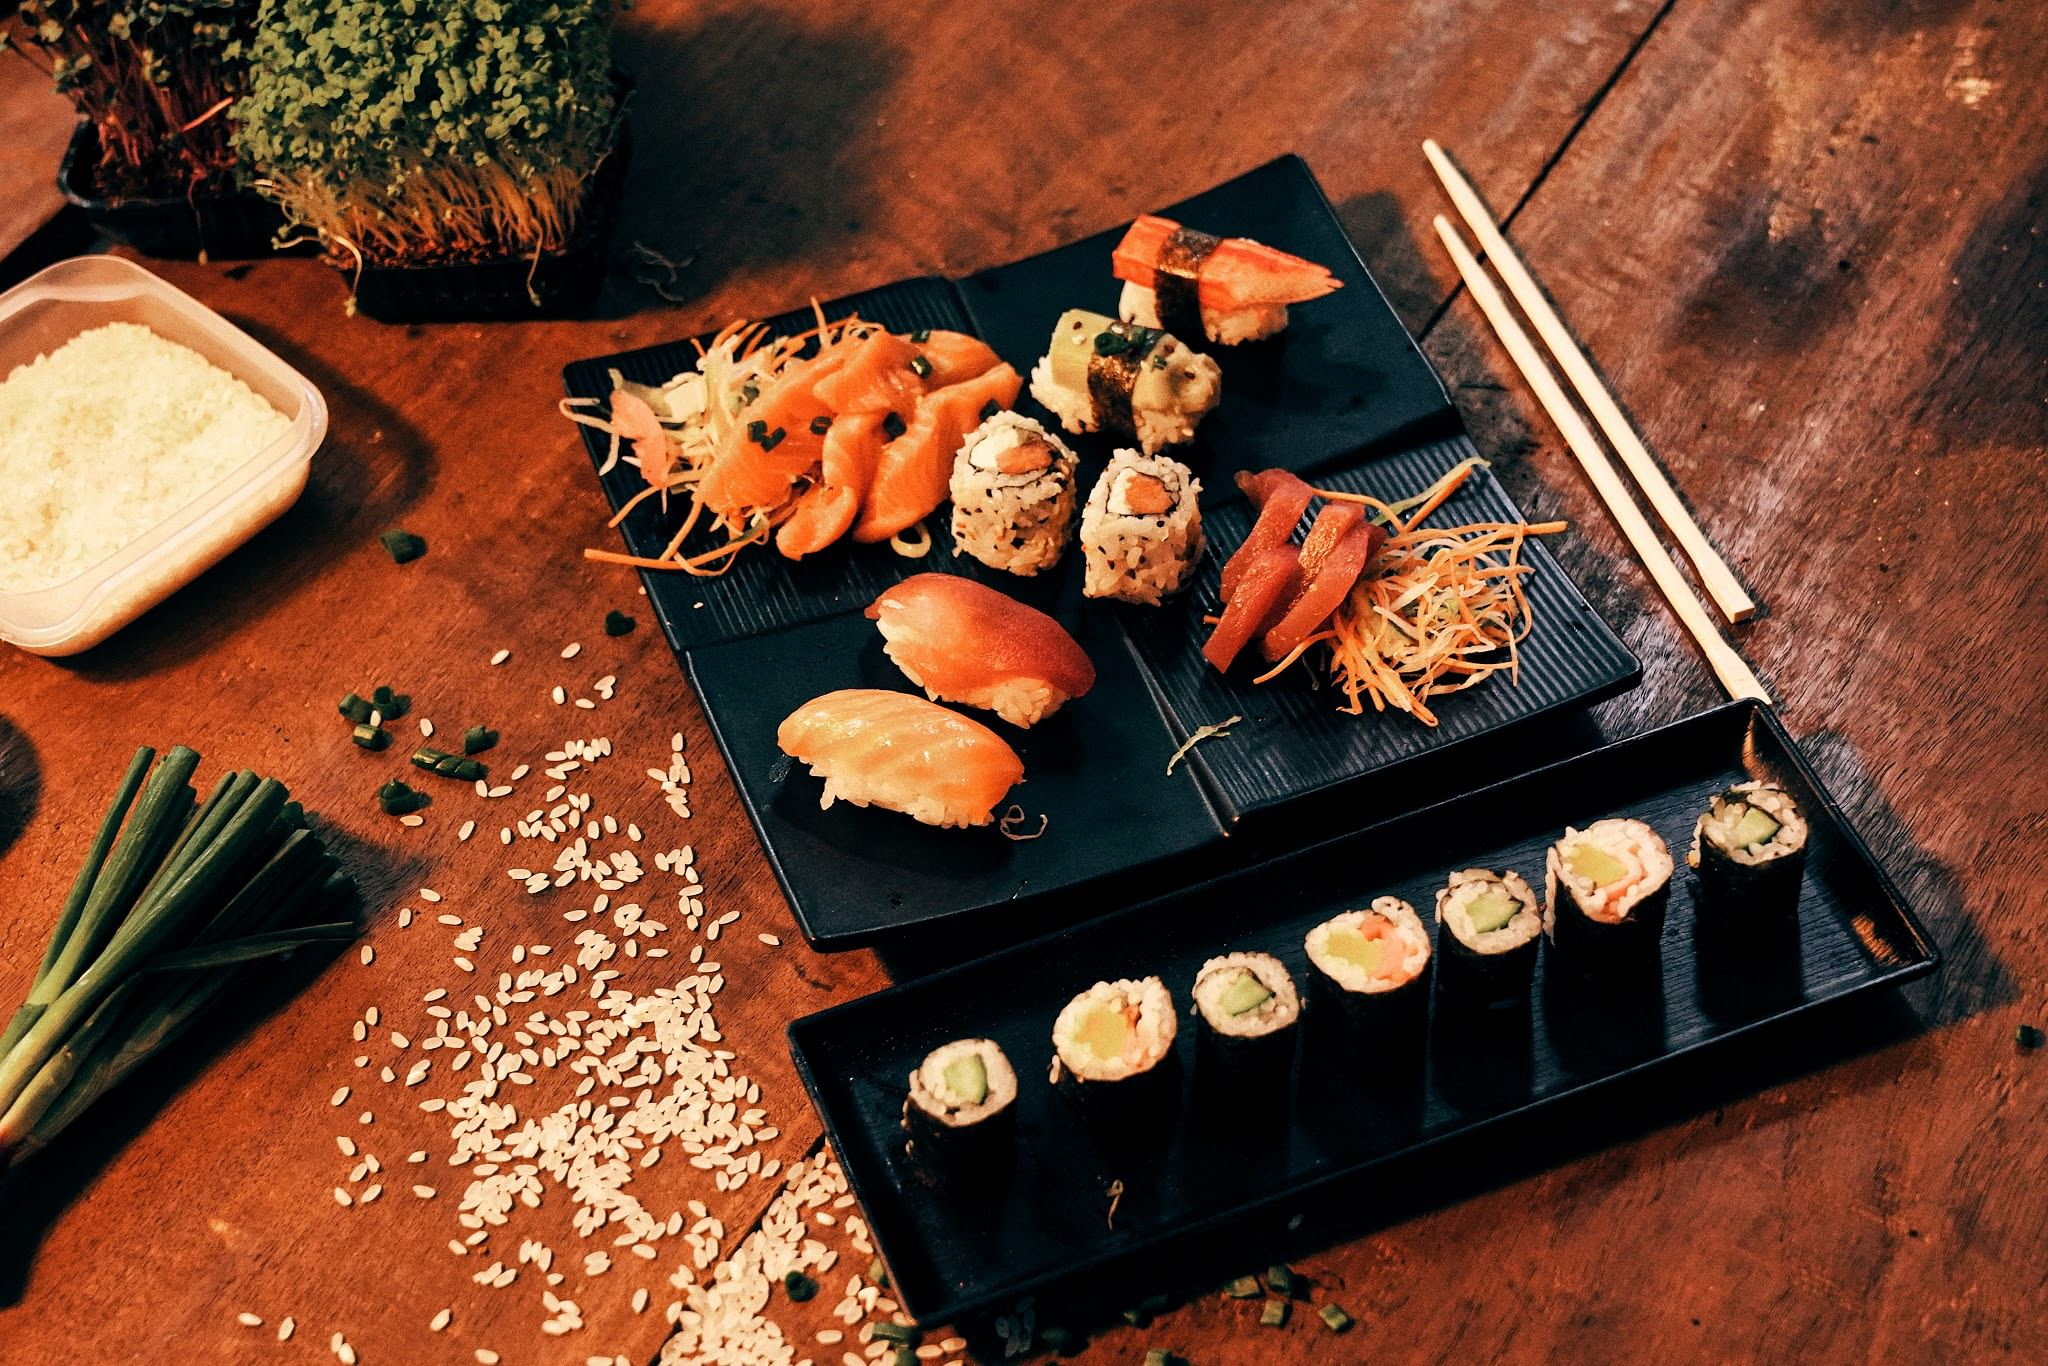 Amid COVID-19, this sushi startup increased its business by building stronger bonds with customers